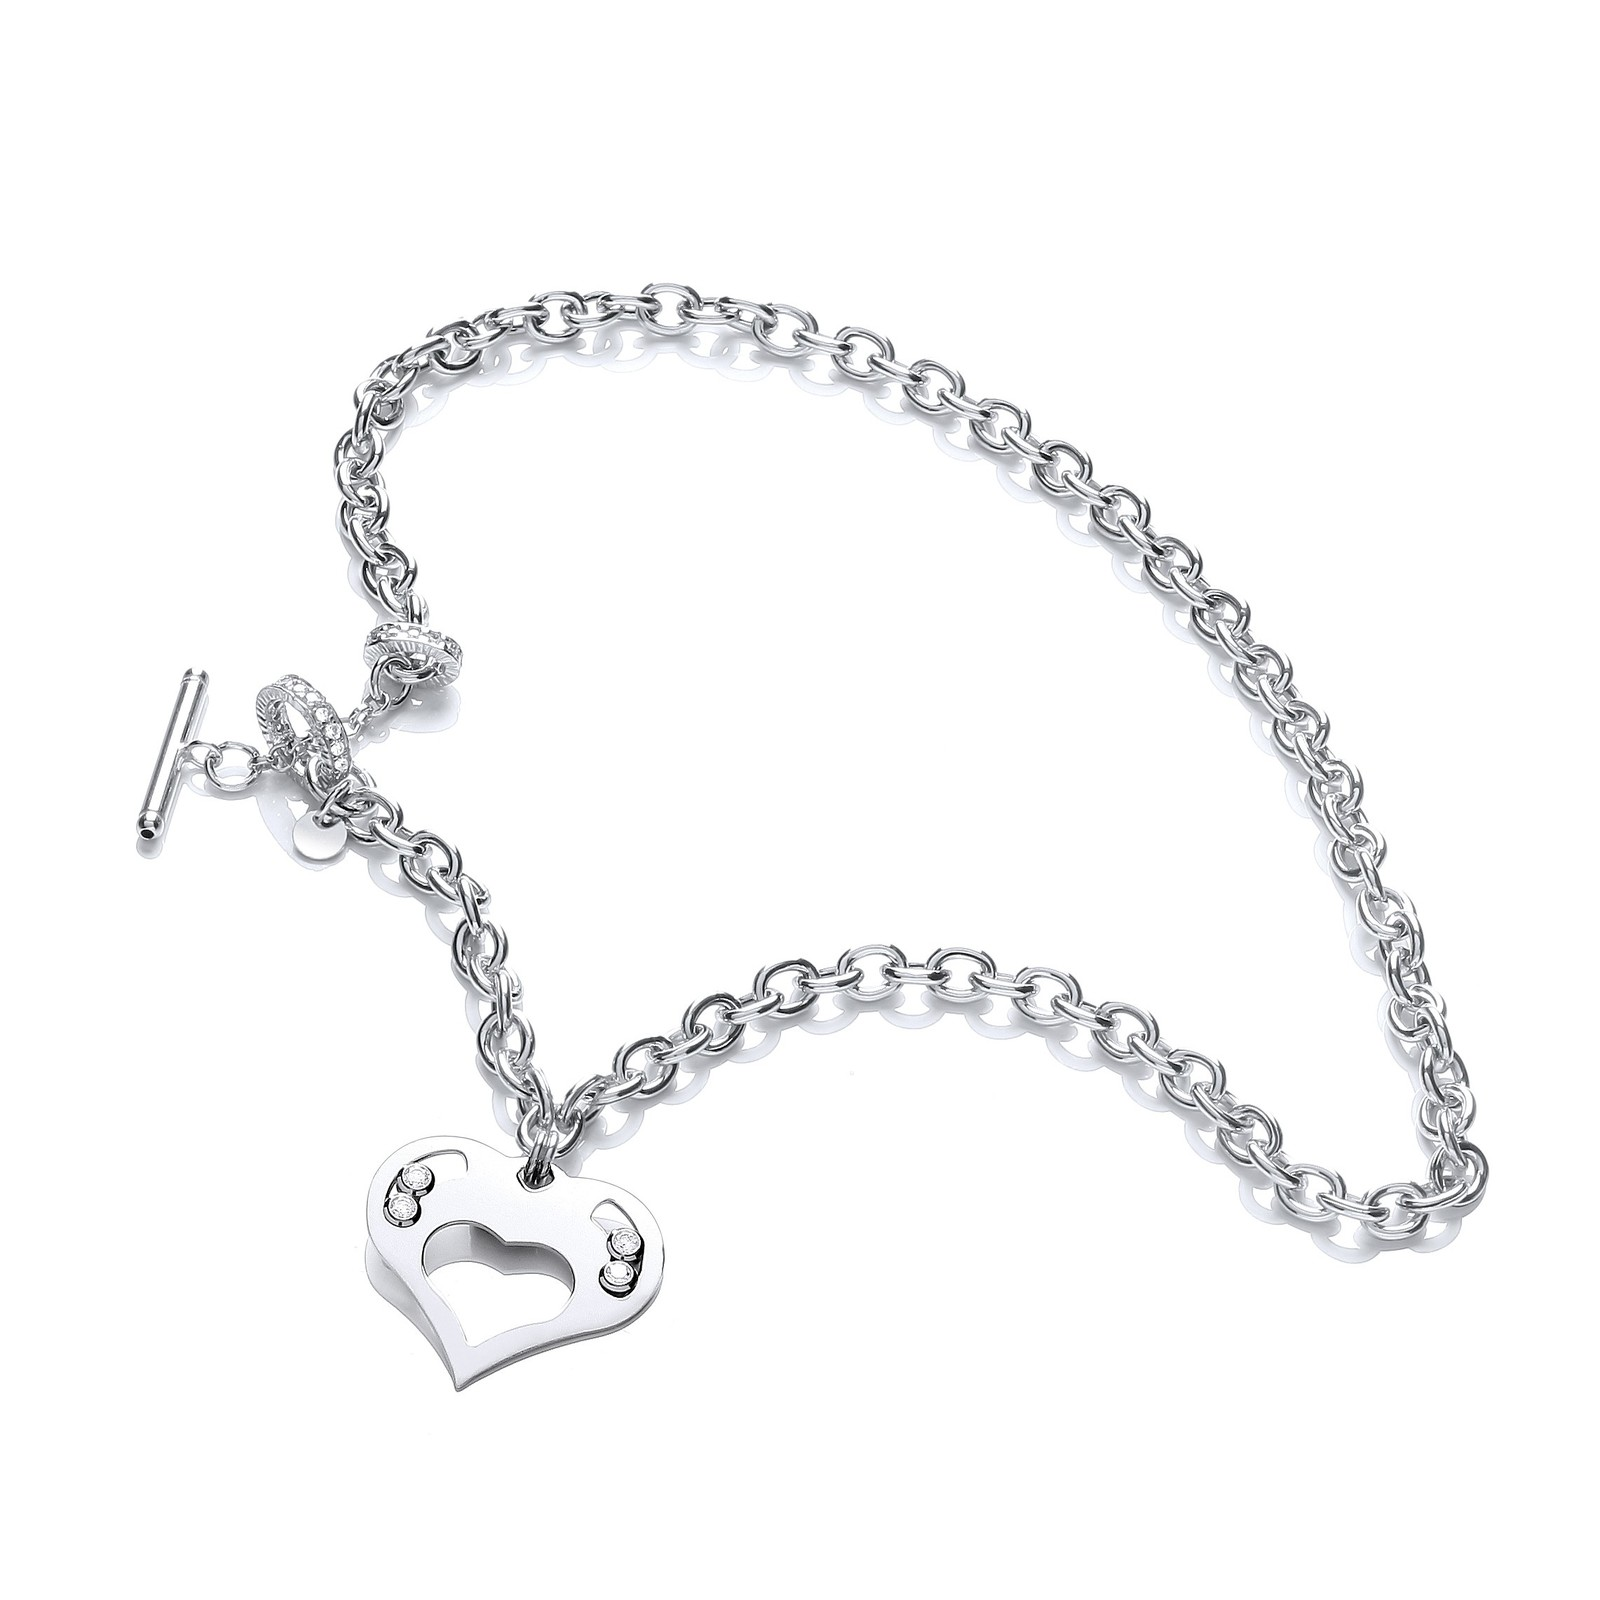 Silver Heart Chain with Floating Swarovski Elements